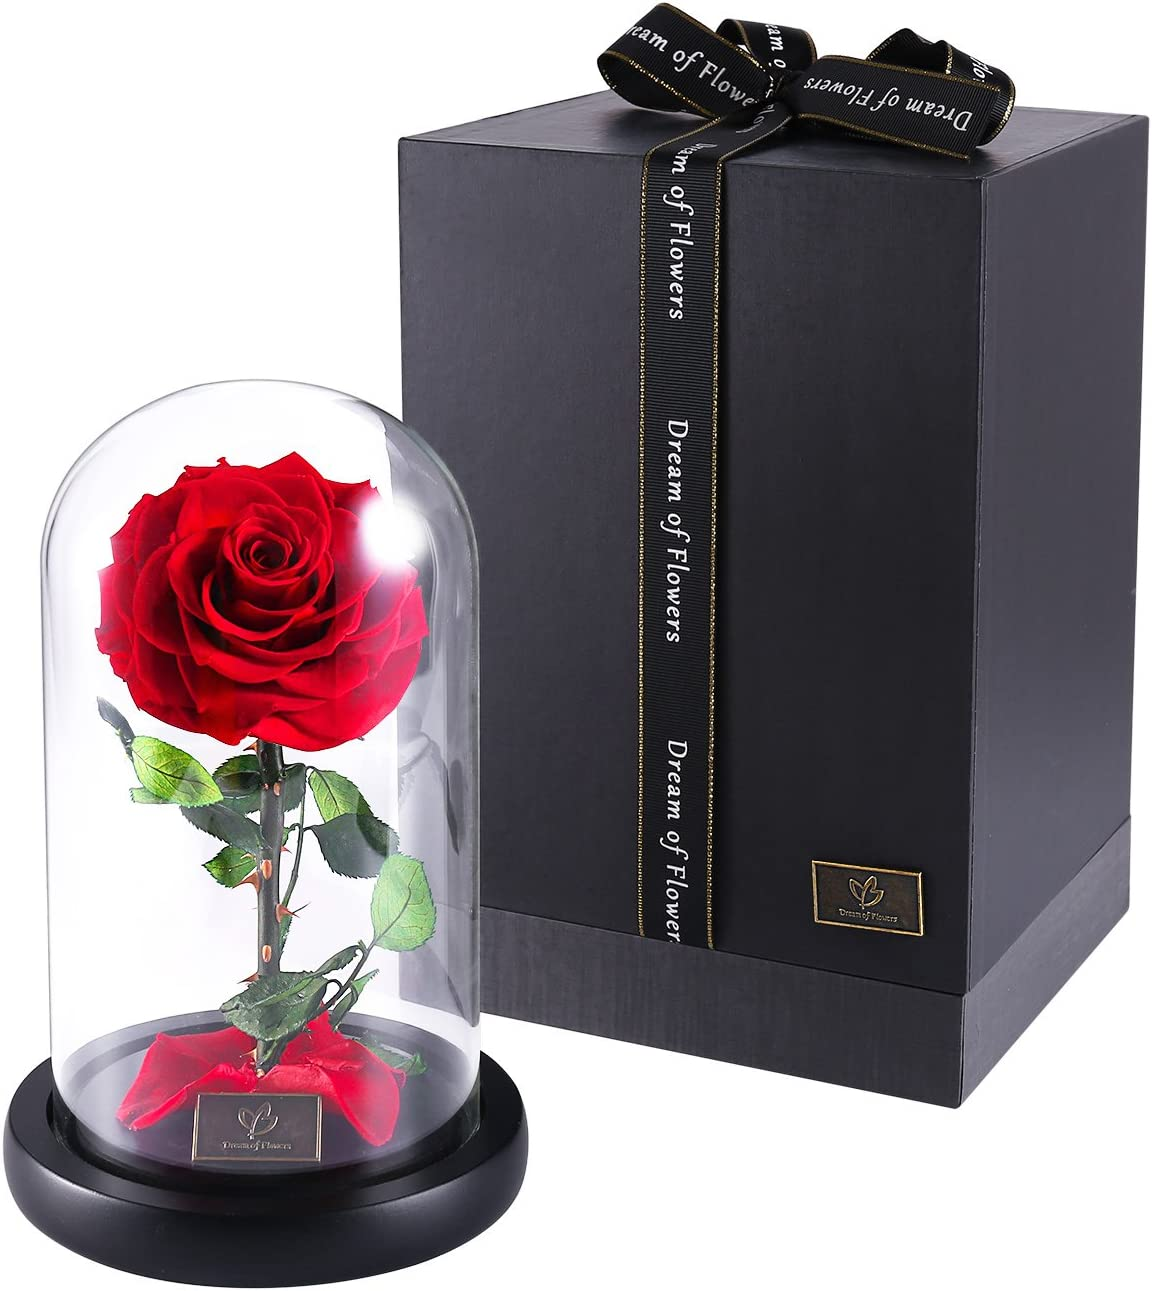 Super Saturday Beauty And The Beast Rose Forever Rose